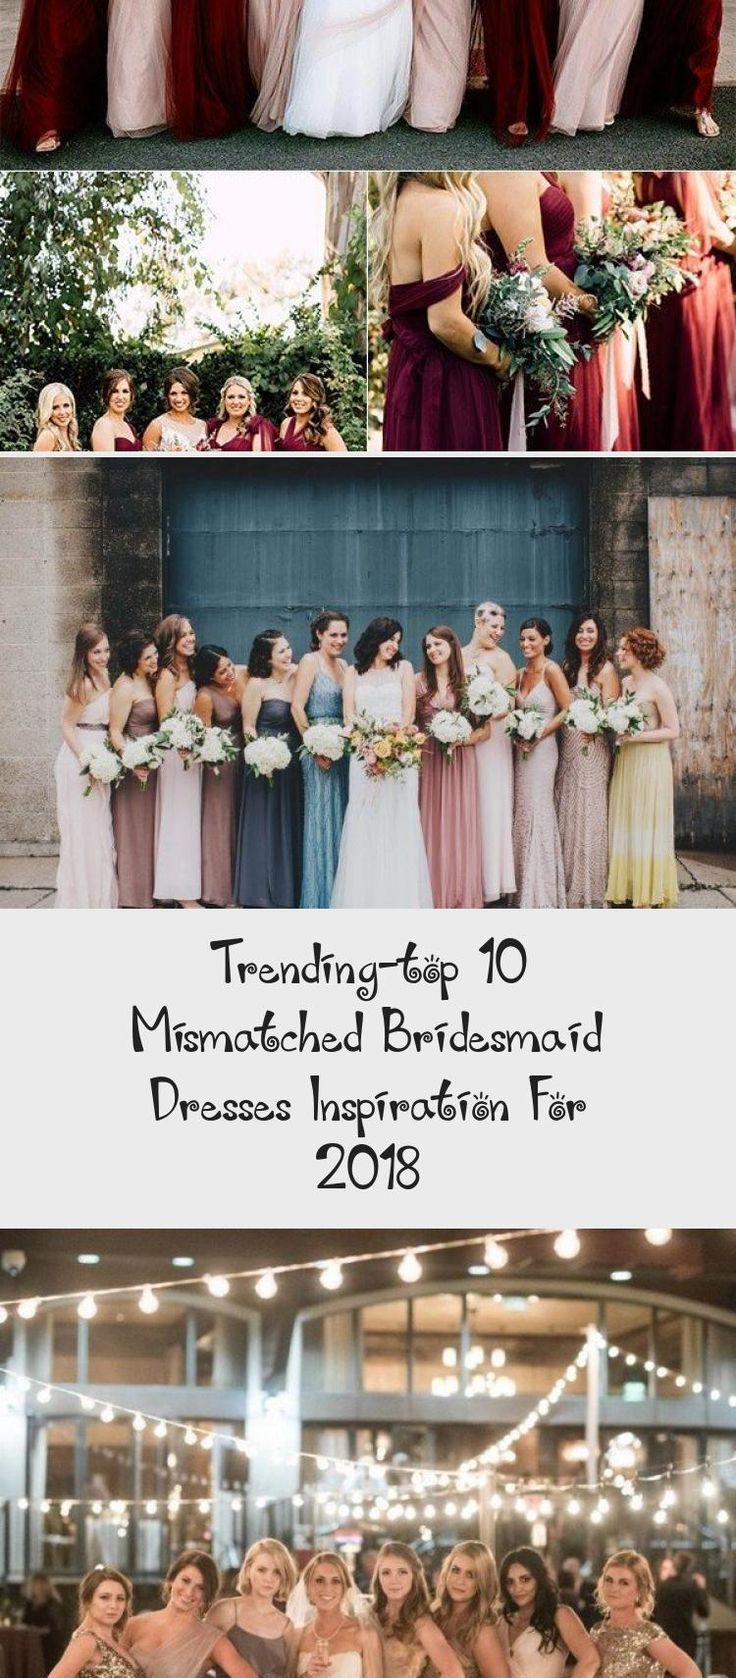 I like doing different color dresses and playing with the greys, blues, and purples. I think the different color greys is really pretty. #VelvetBridesmaidDresses #CheapBridesmaidDresses #LavenderBridesmaidDresses #OrangeBridesmaidDresses #BridesmaidDressesVintage